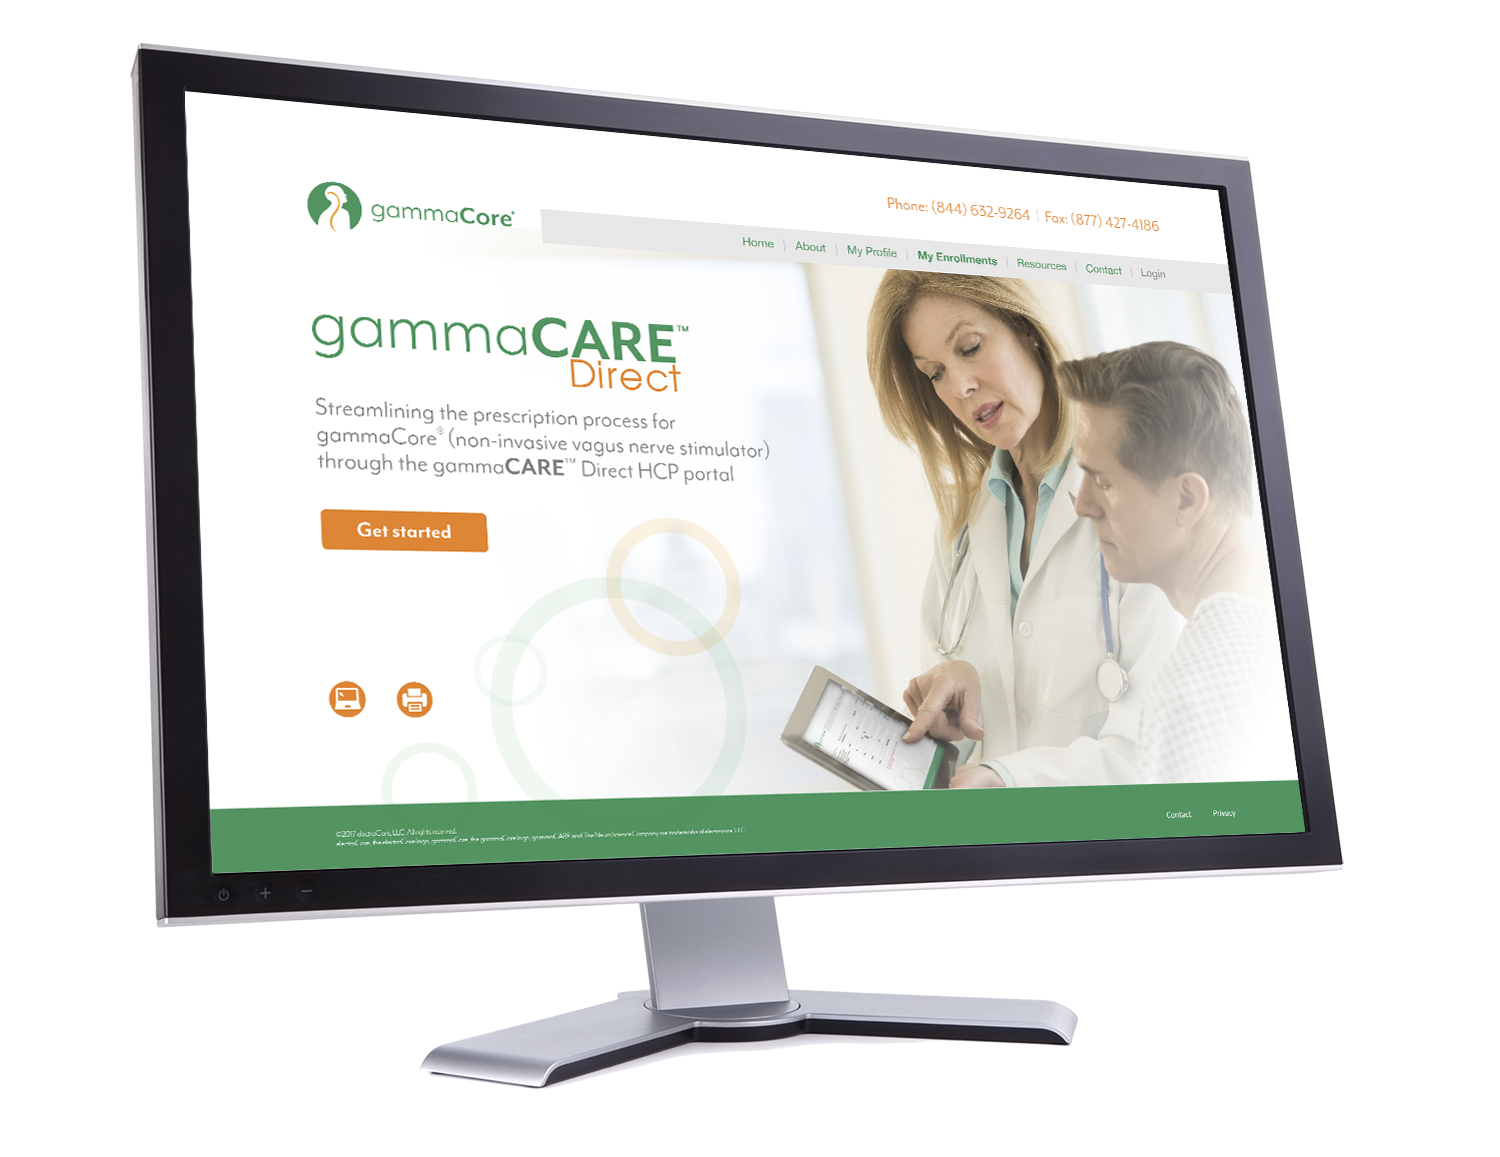 Image of gammaCARE Direct portal